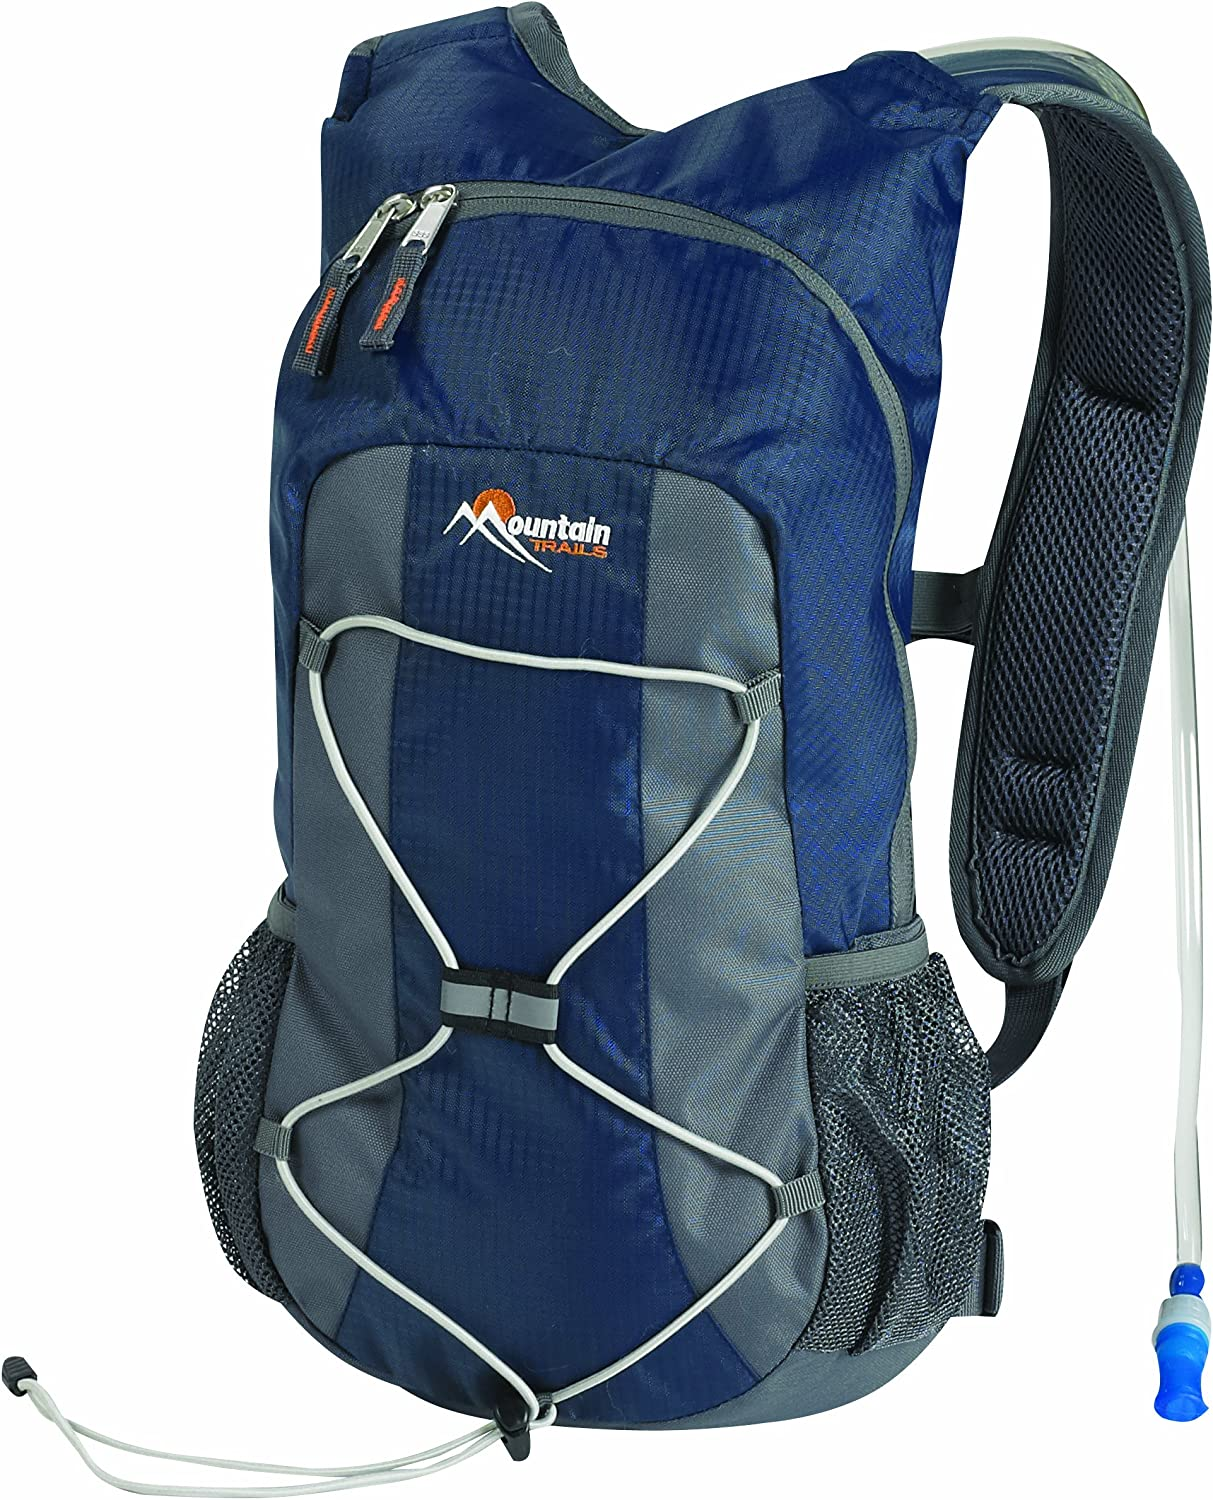 Mountain Trails Revive Hydration Pack, 12-Liter, Blue